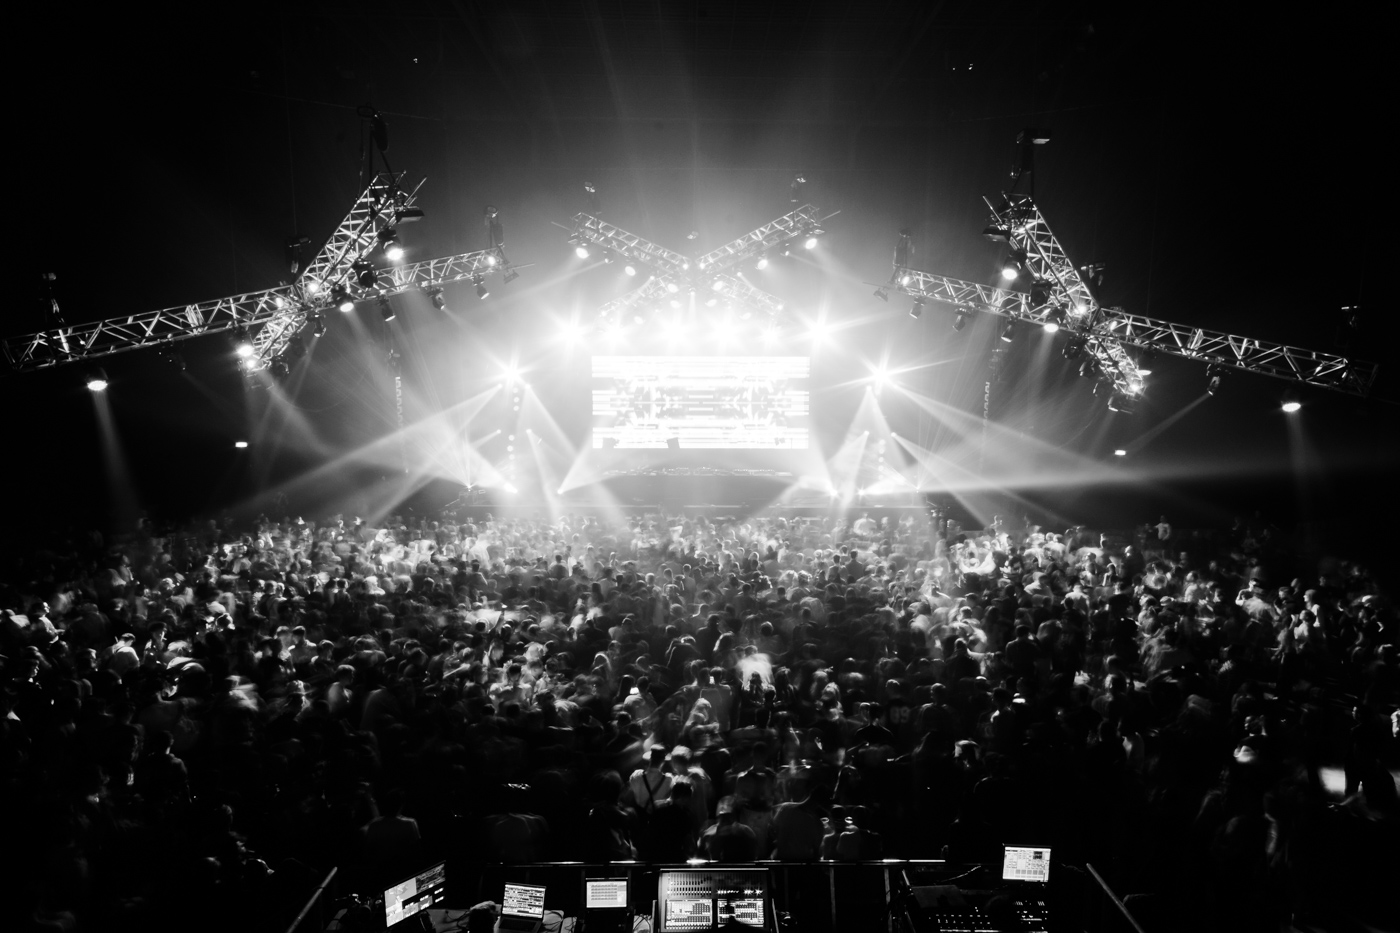 winterparty-at-3arena-dublin-30-10-2016-by-sean-smyth-45-of-53